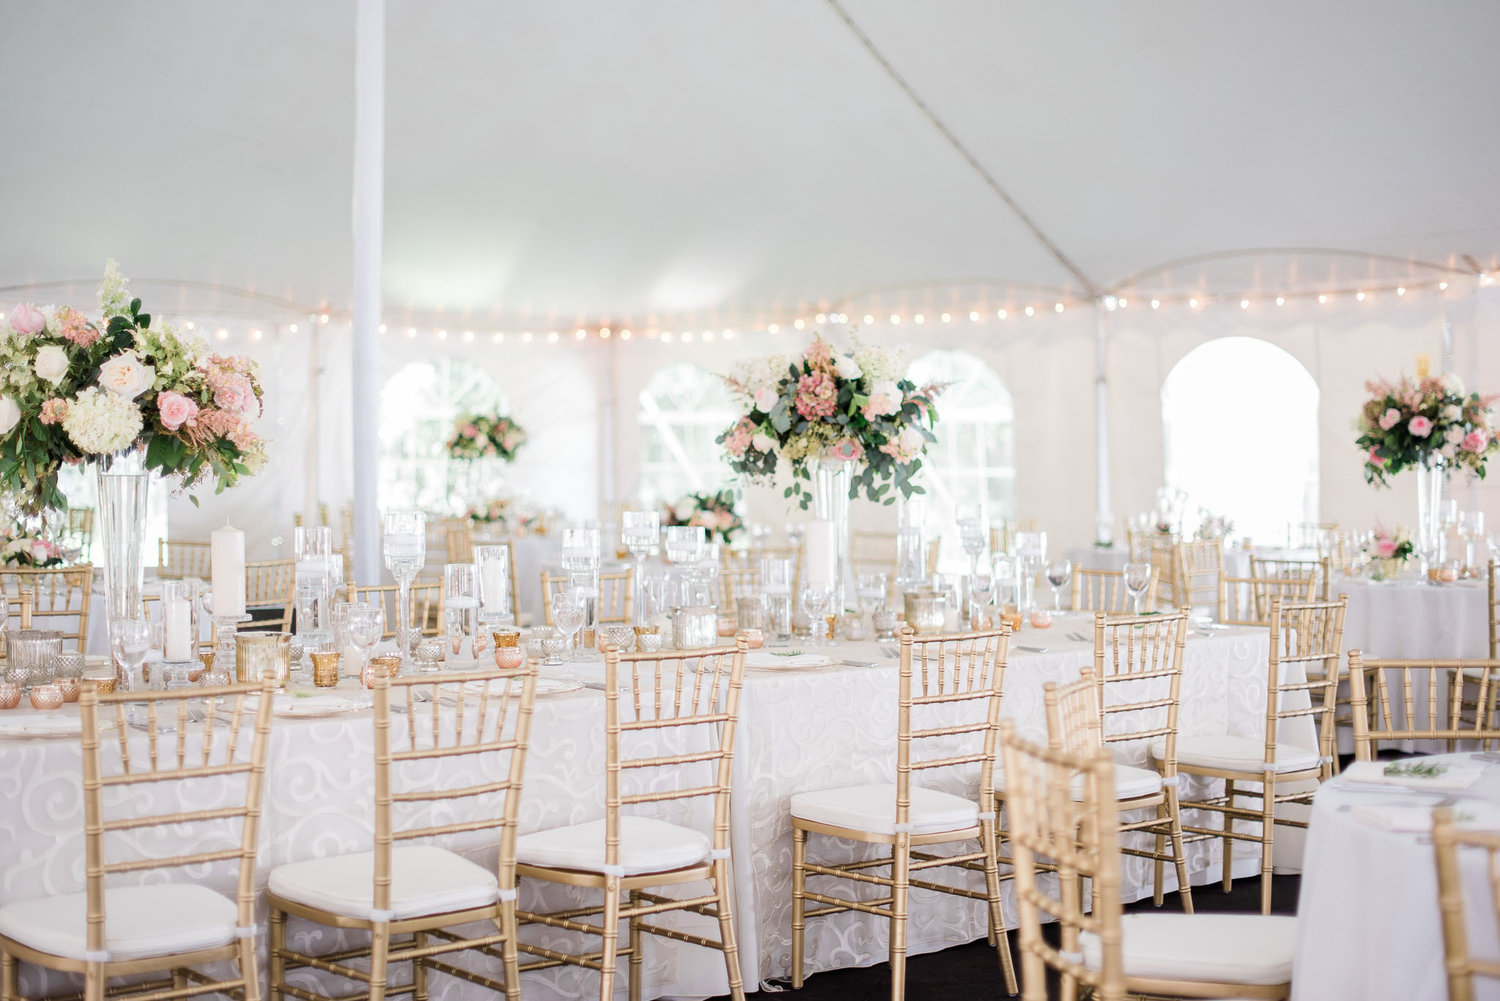 The Seatery - Wedding & Event Chair Rental in Minneapolis & St. Paul